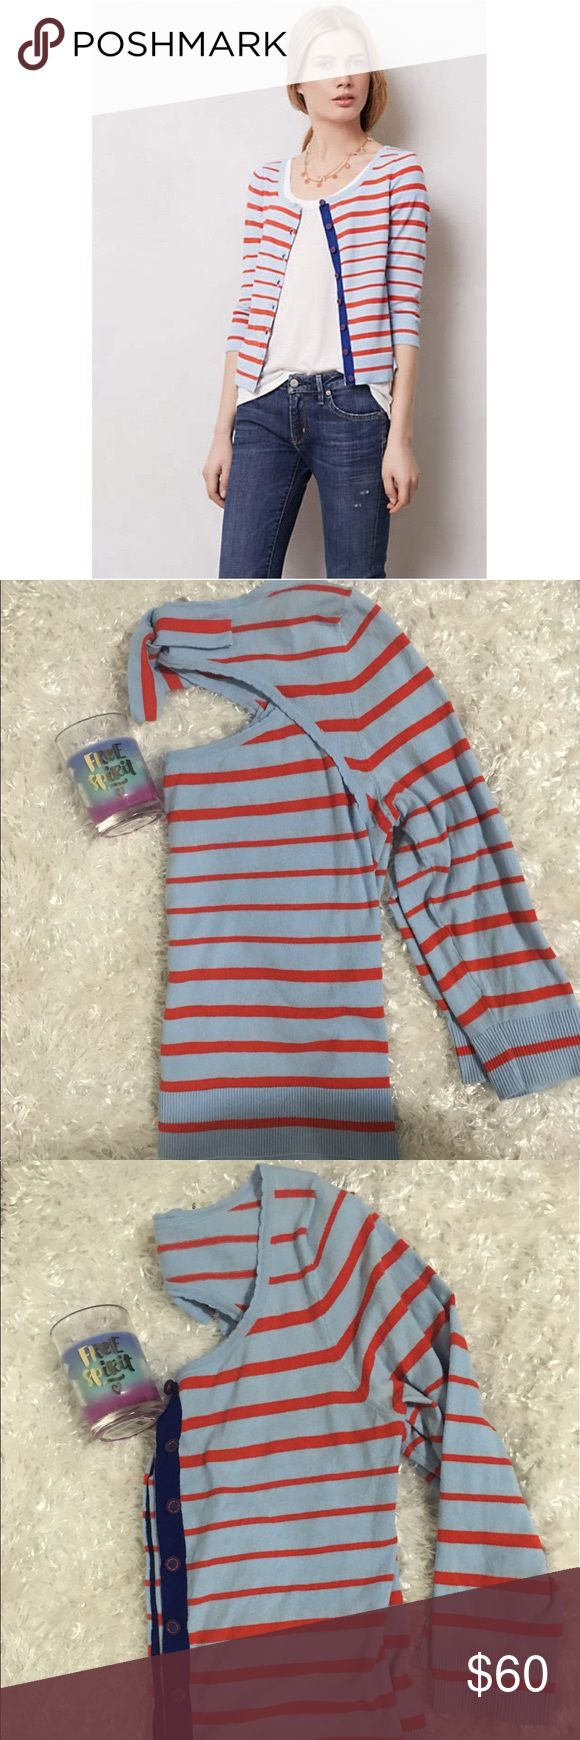 ⚓️Moth from Anthro nautical cardigan ⚓️ ⚓️⚓️⚓️ Omg! This sweater is the cutest thing!!!baby blue with red stripes!!! Cutout back with a bow!!! Cutest detailed buttons!!! Measurements: bust 16 inches length 20 inches arm length 16.5. Gently used!!! Please feel free to ask any questions and as always offers are welcome!!! Bundle & save!!!⚓️⚓️⚓️ Anthropologie Sweaters Cardigans